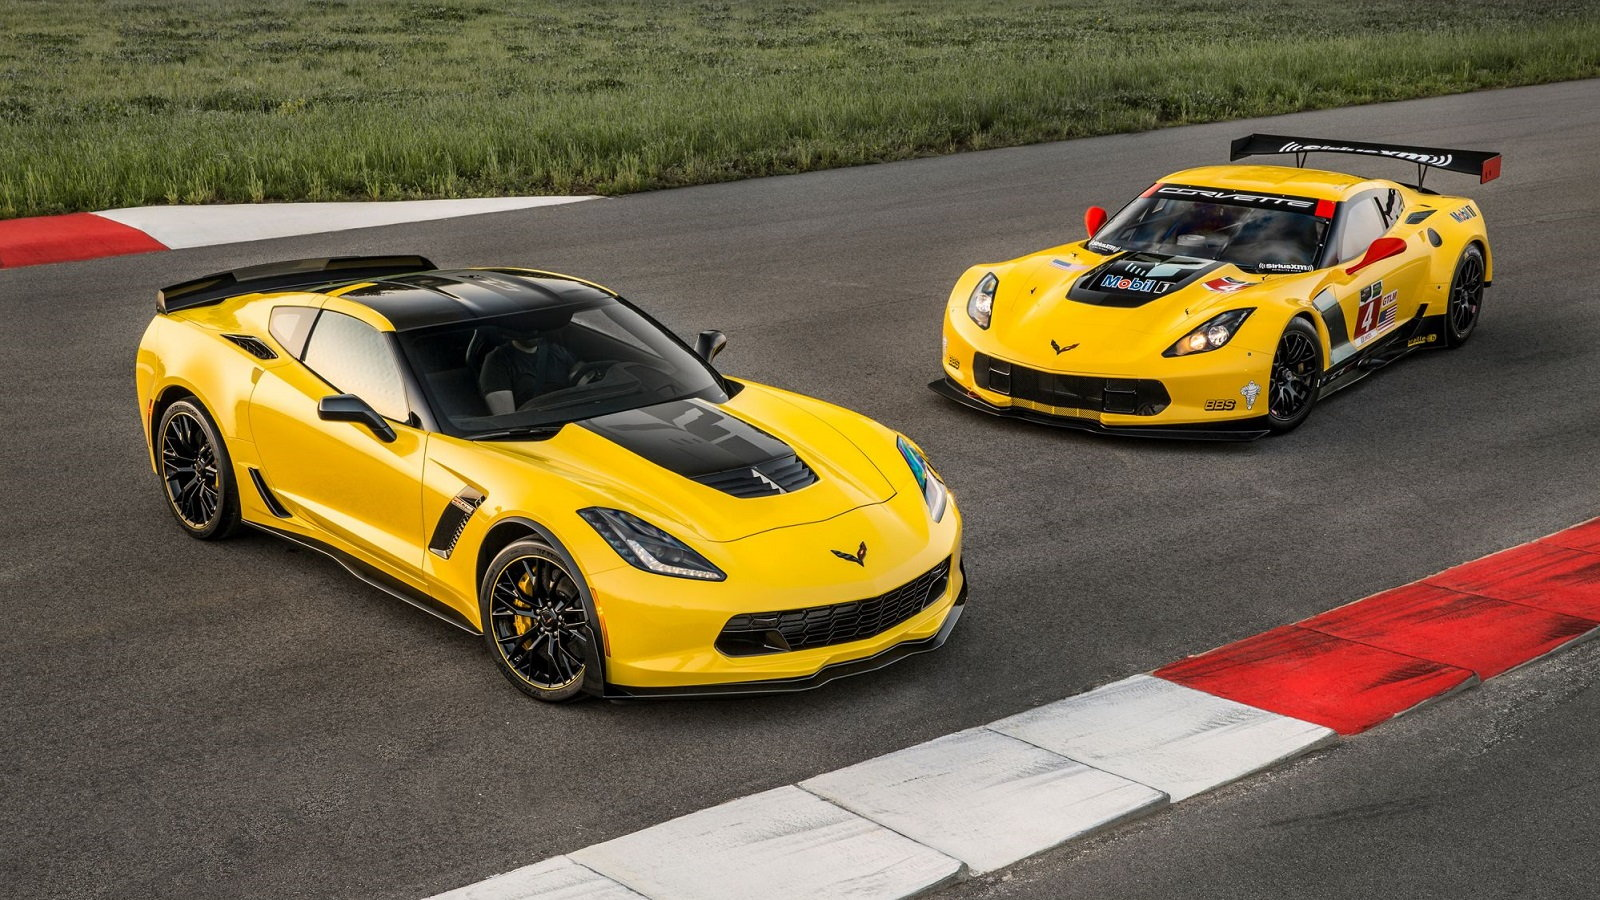 7. The C7R